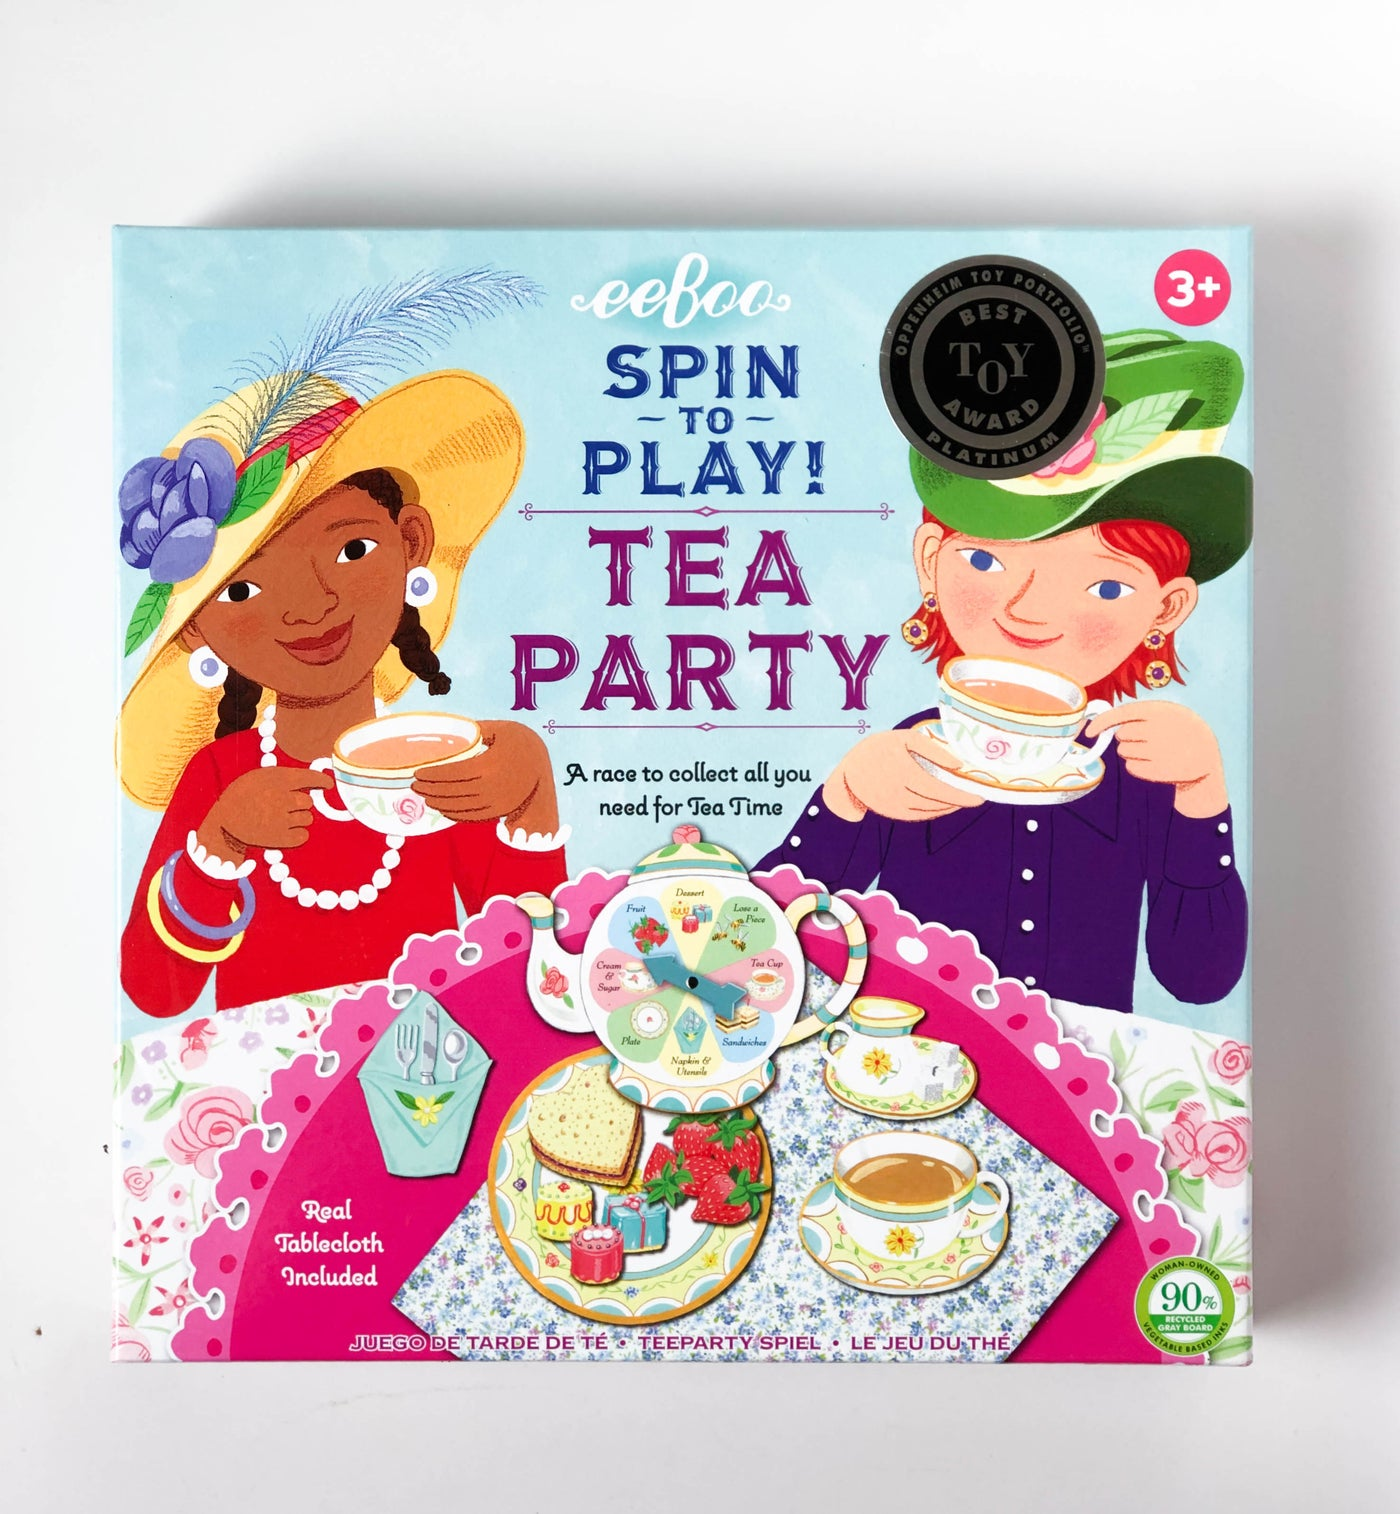 Spin to Play! Tea Party